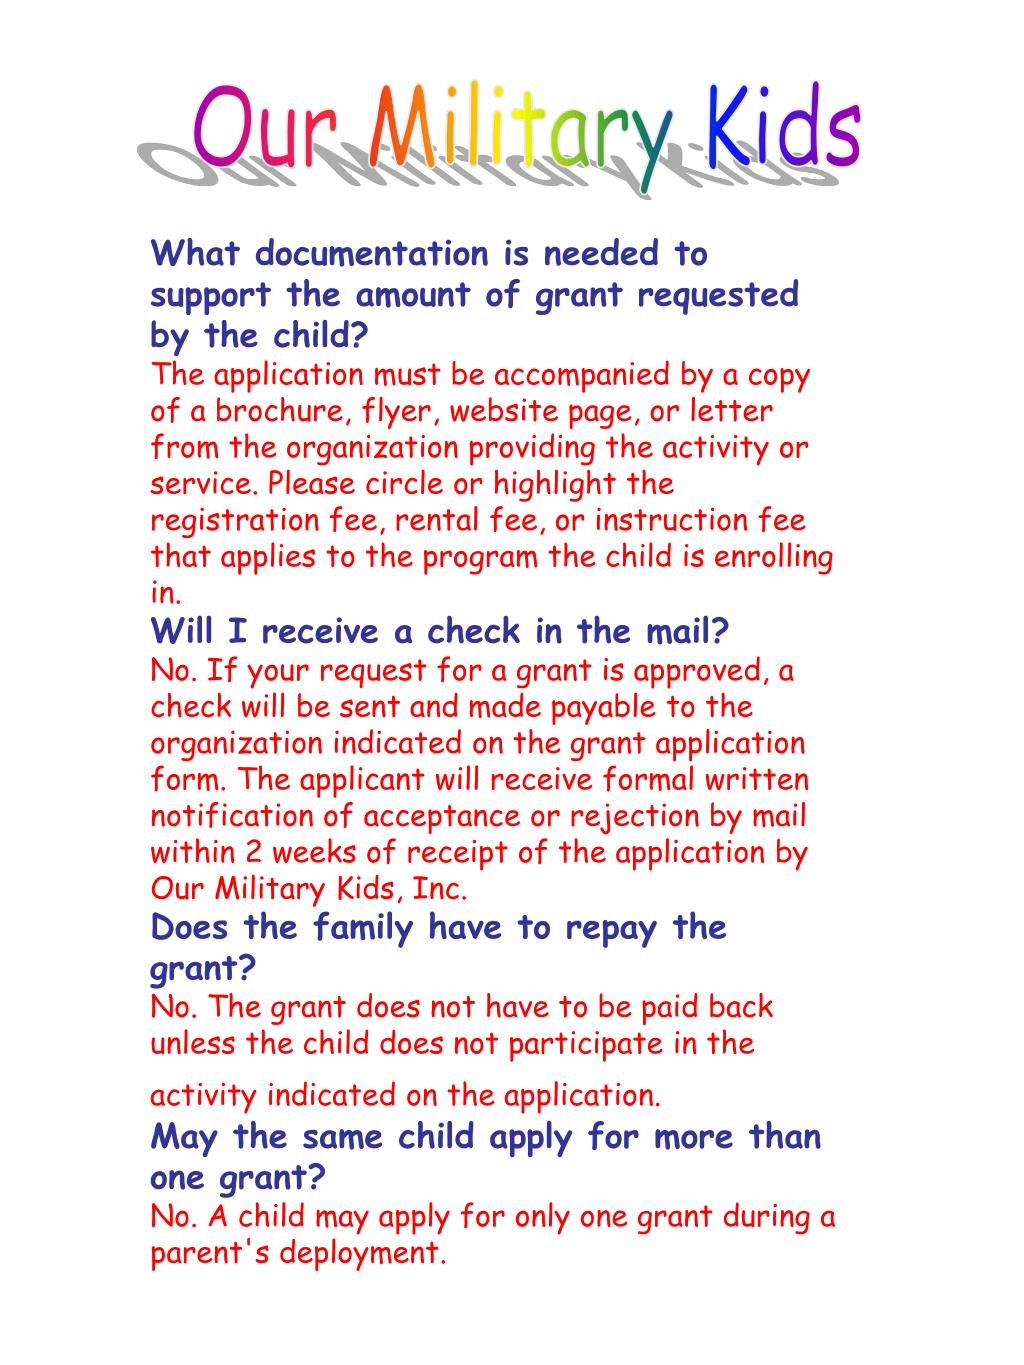 What tutoring services qualify under this program and what documentation is required?